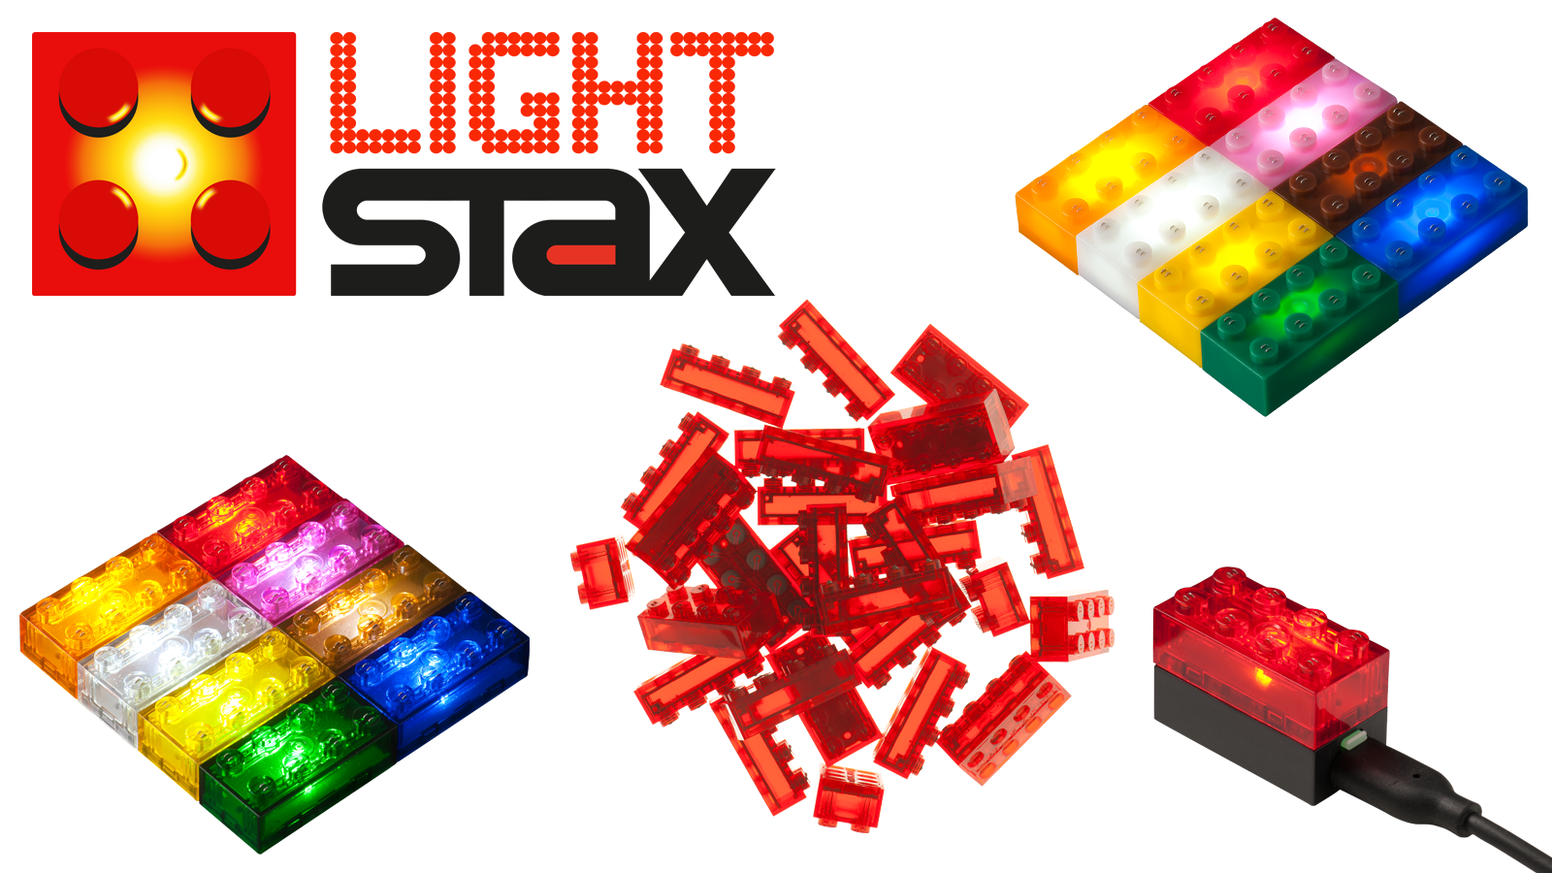 Light stax toy bricks meet led by arno fluitman kickstarter light stax are led bricks fully compatible with lego and other brands light asfbconference2016 Choice Image